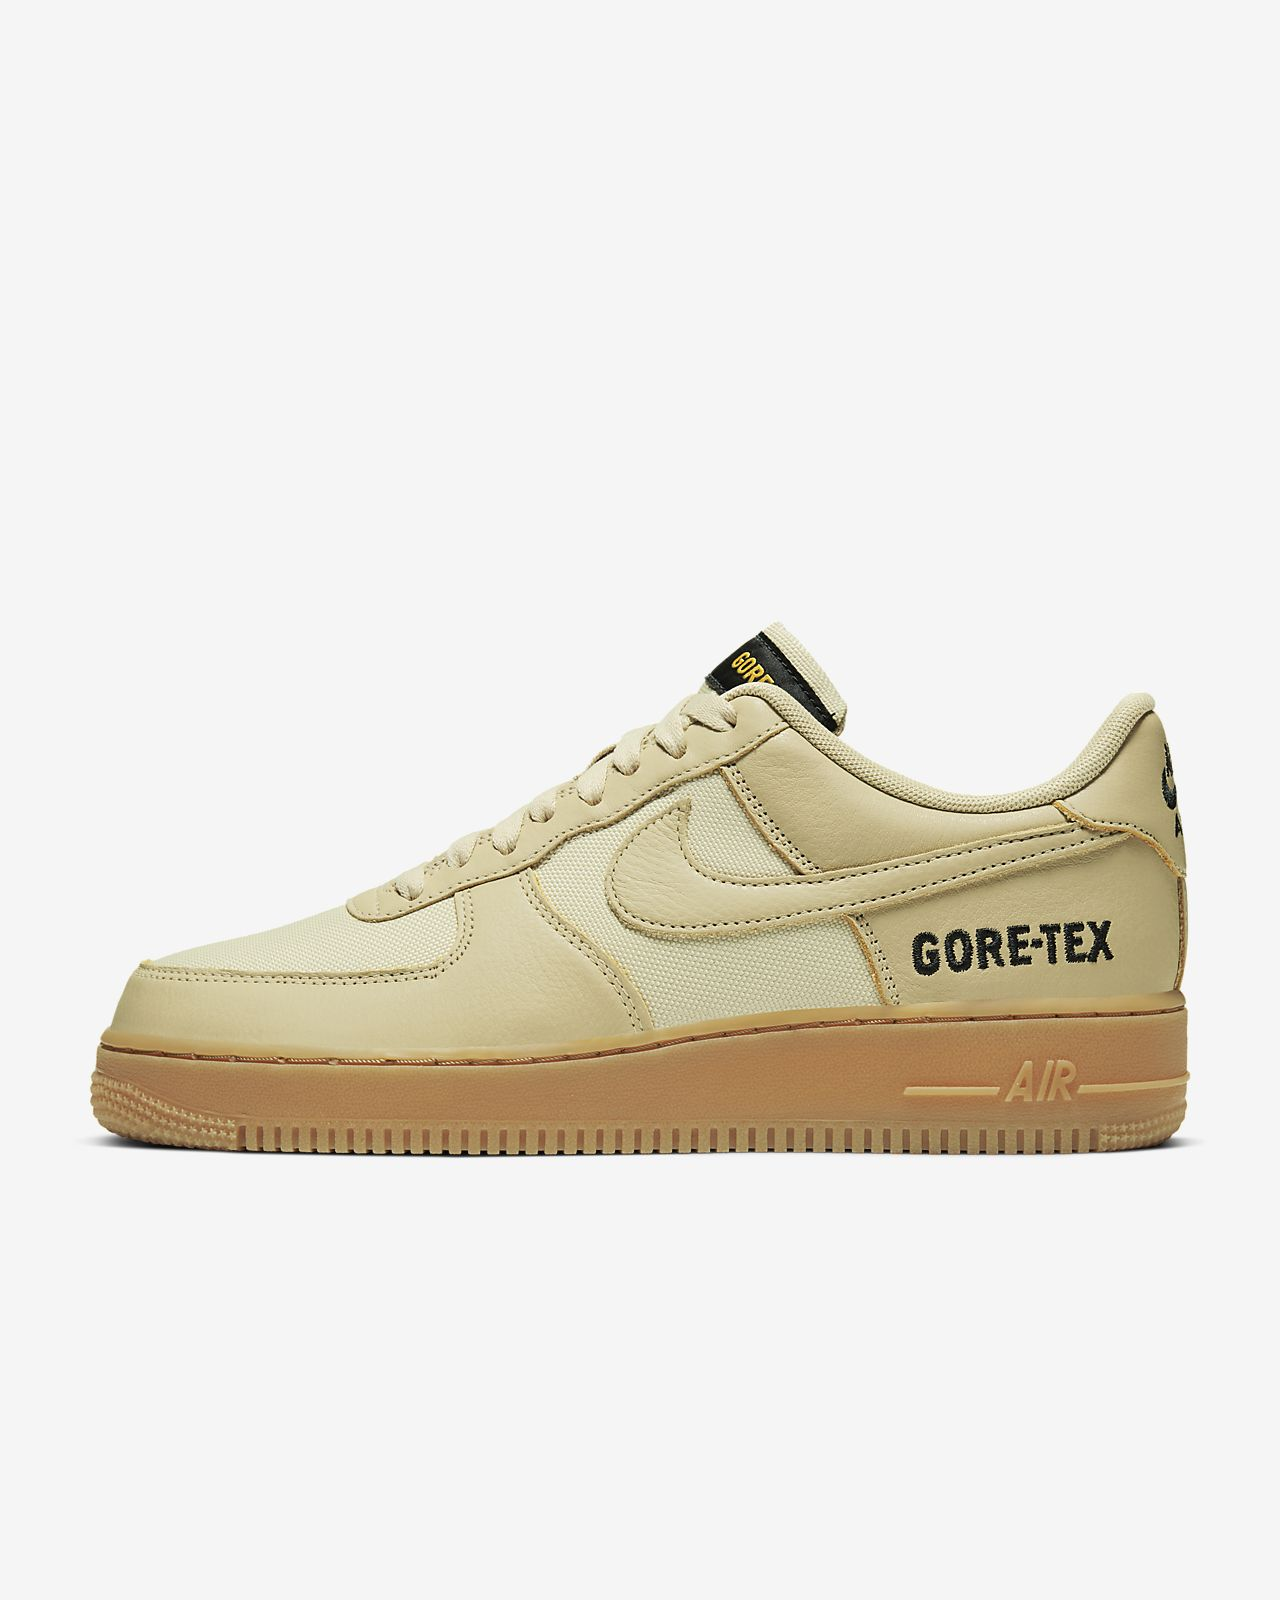 Nike Air Force 1 GORE-TEX 鞋款